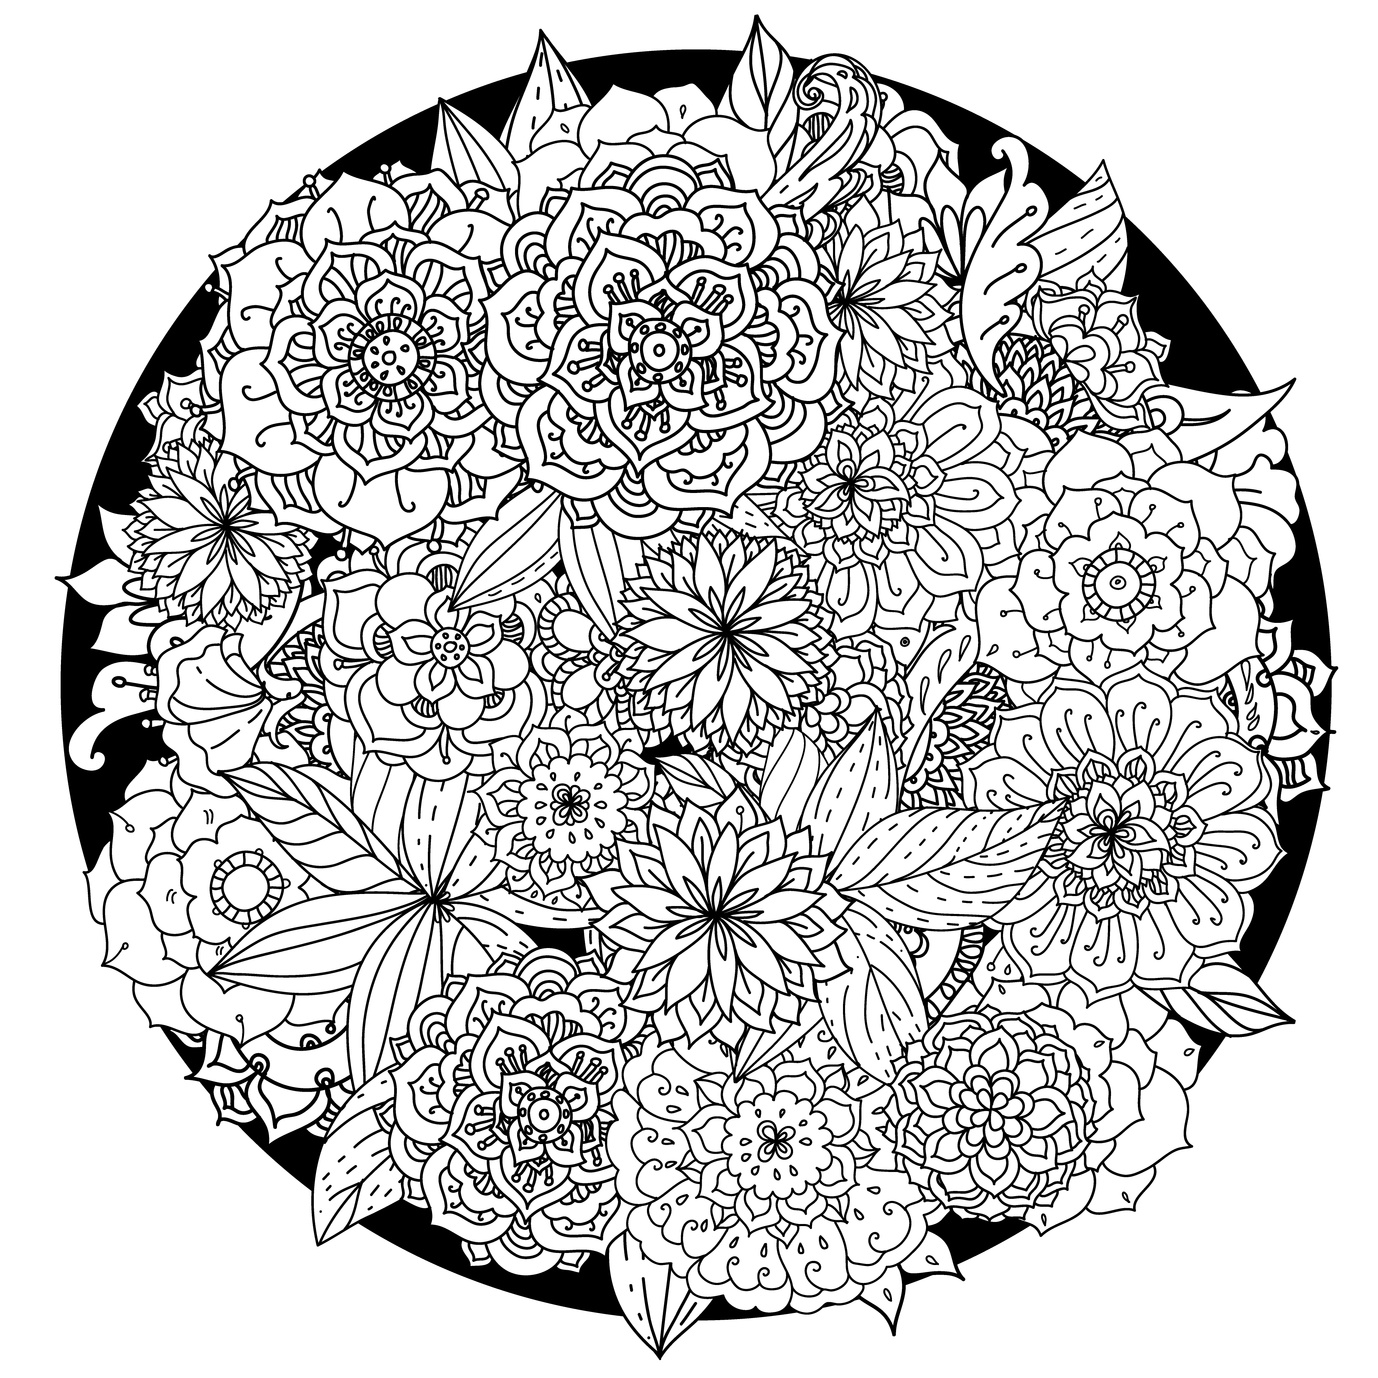 Best HD Flower Mandala Coloring Pages For Adults Images ...